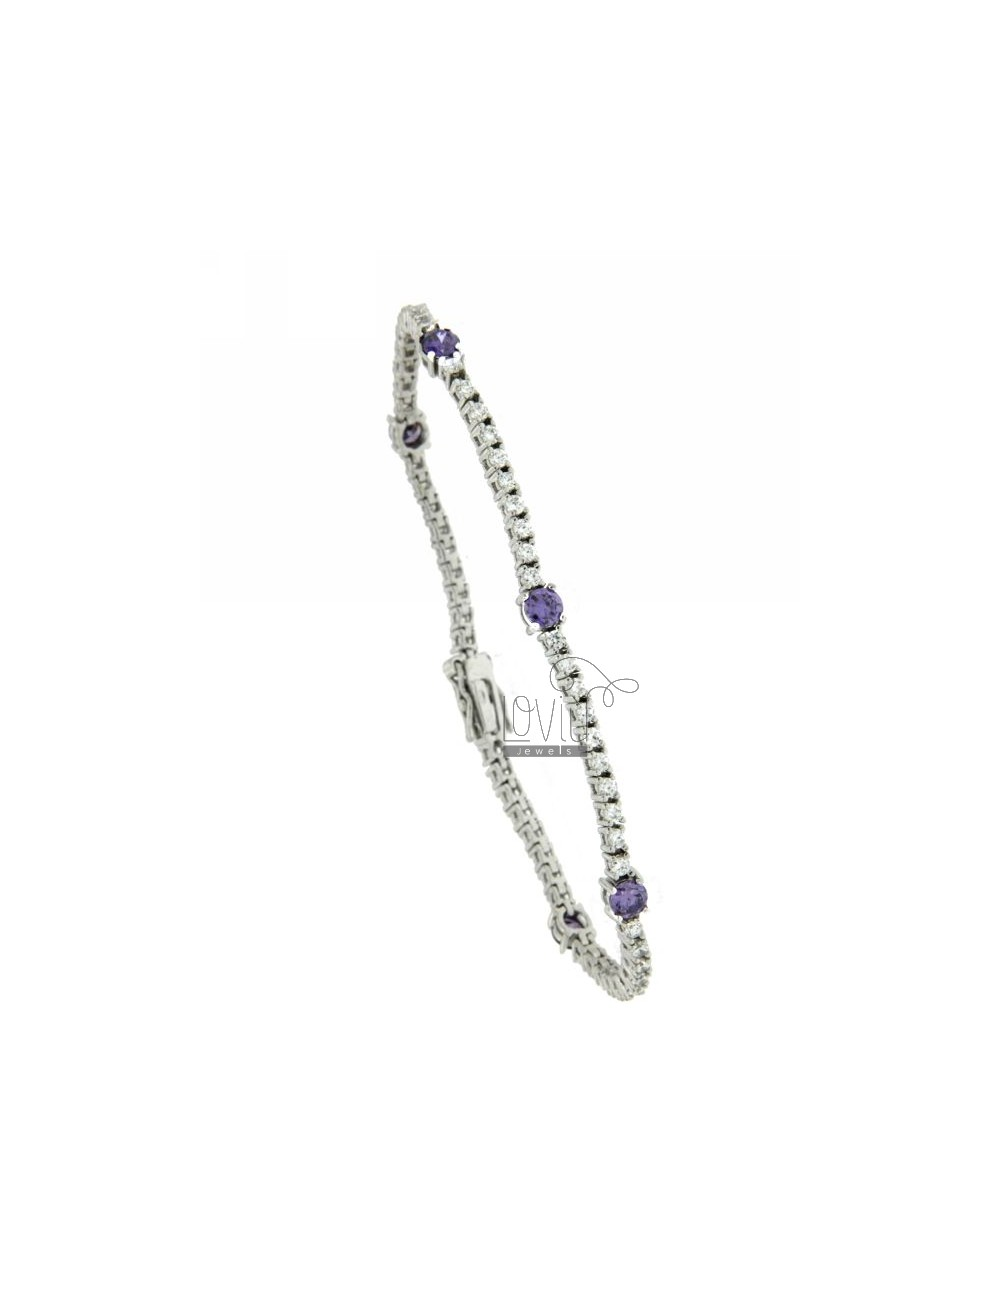 TENNIS BRACELET IN TIT AG 925 AND ZIRCONIA WHITE AND PURPLE